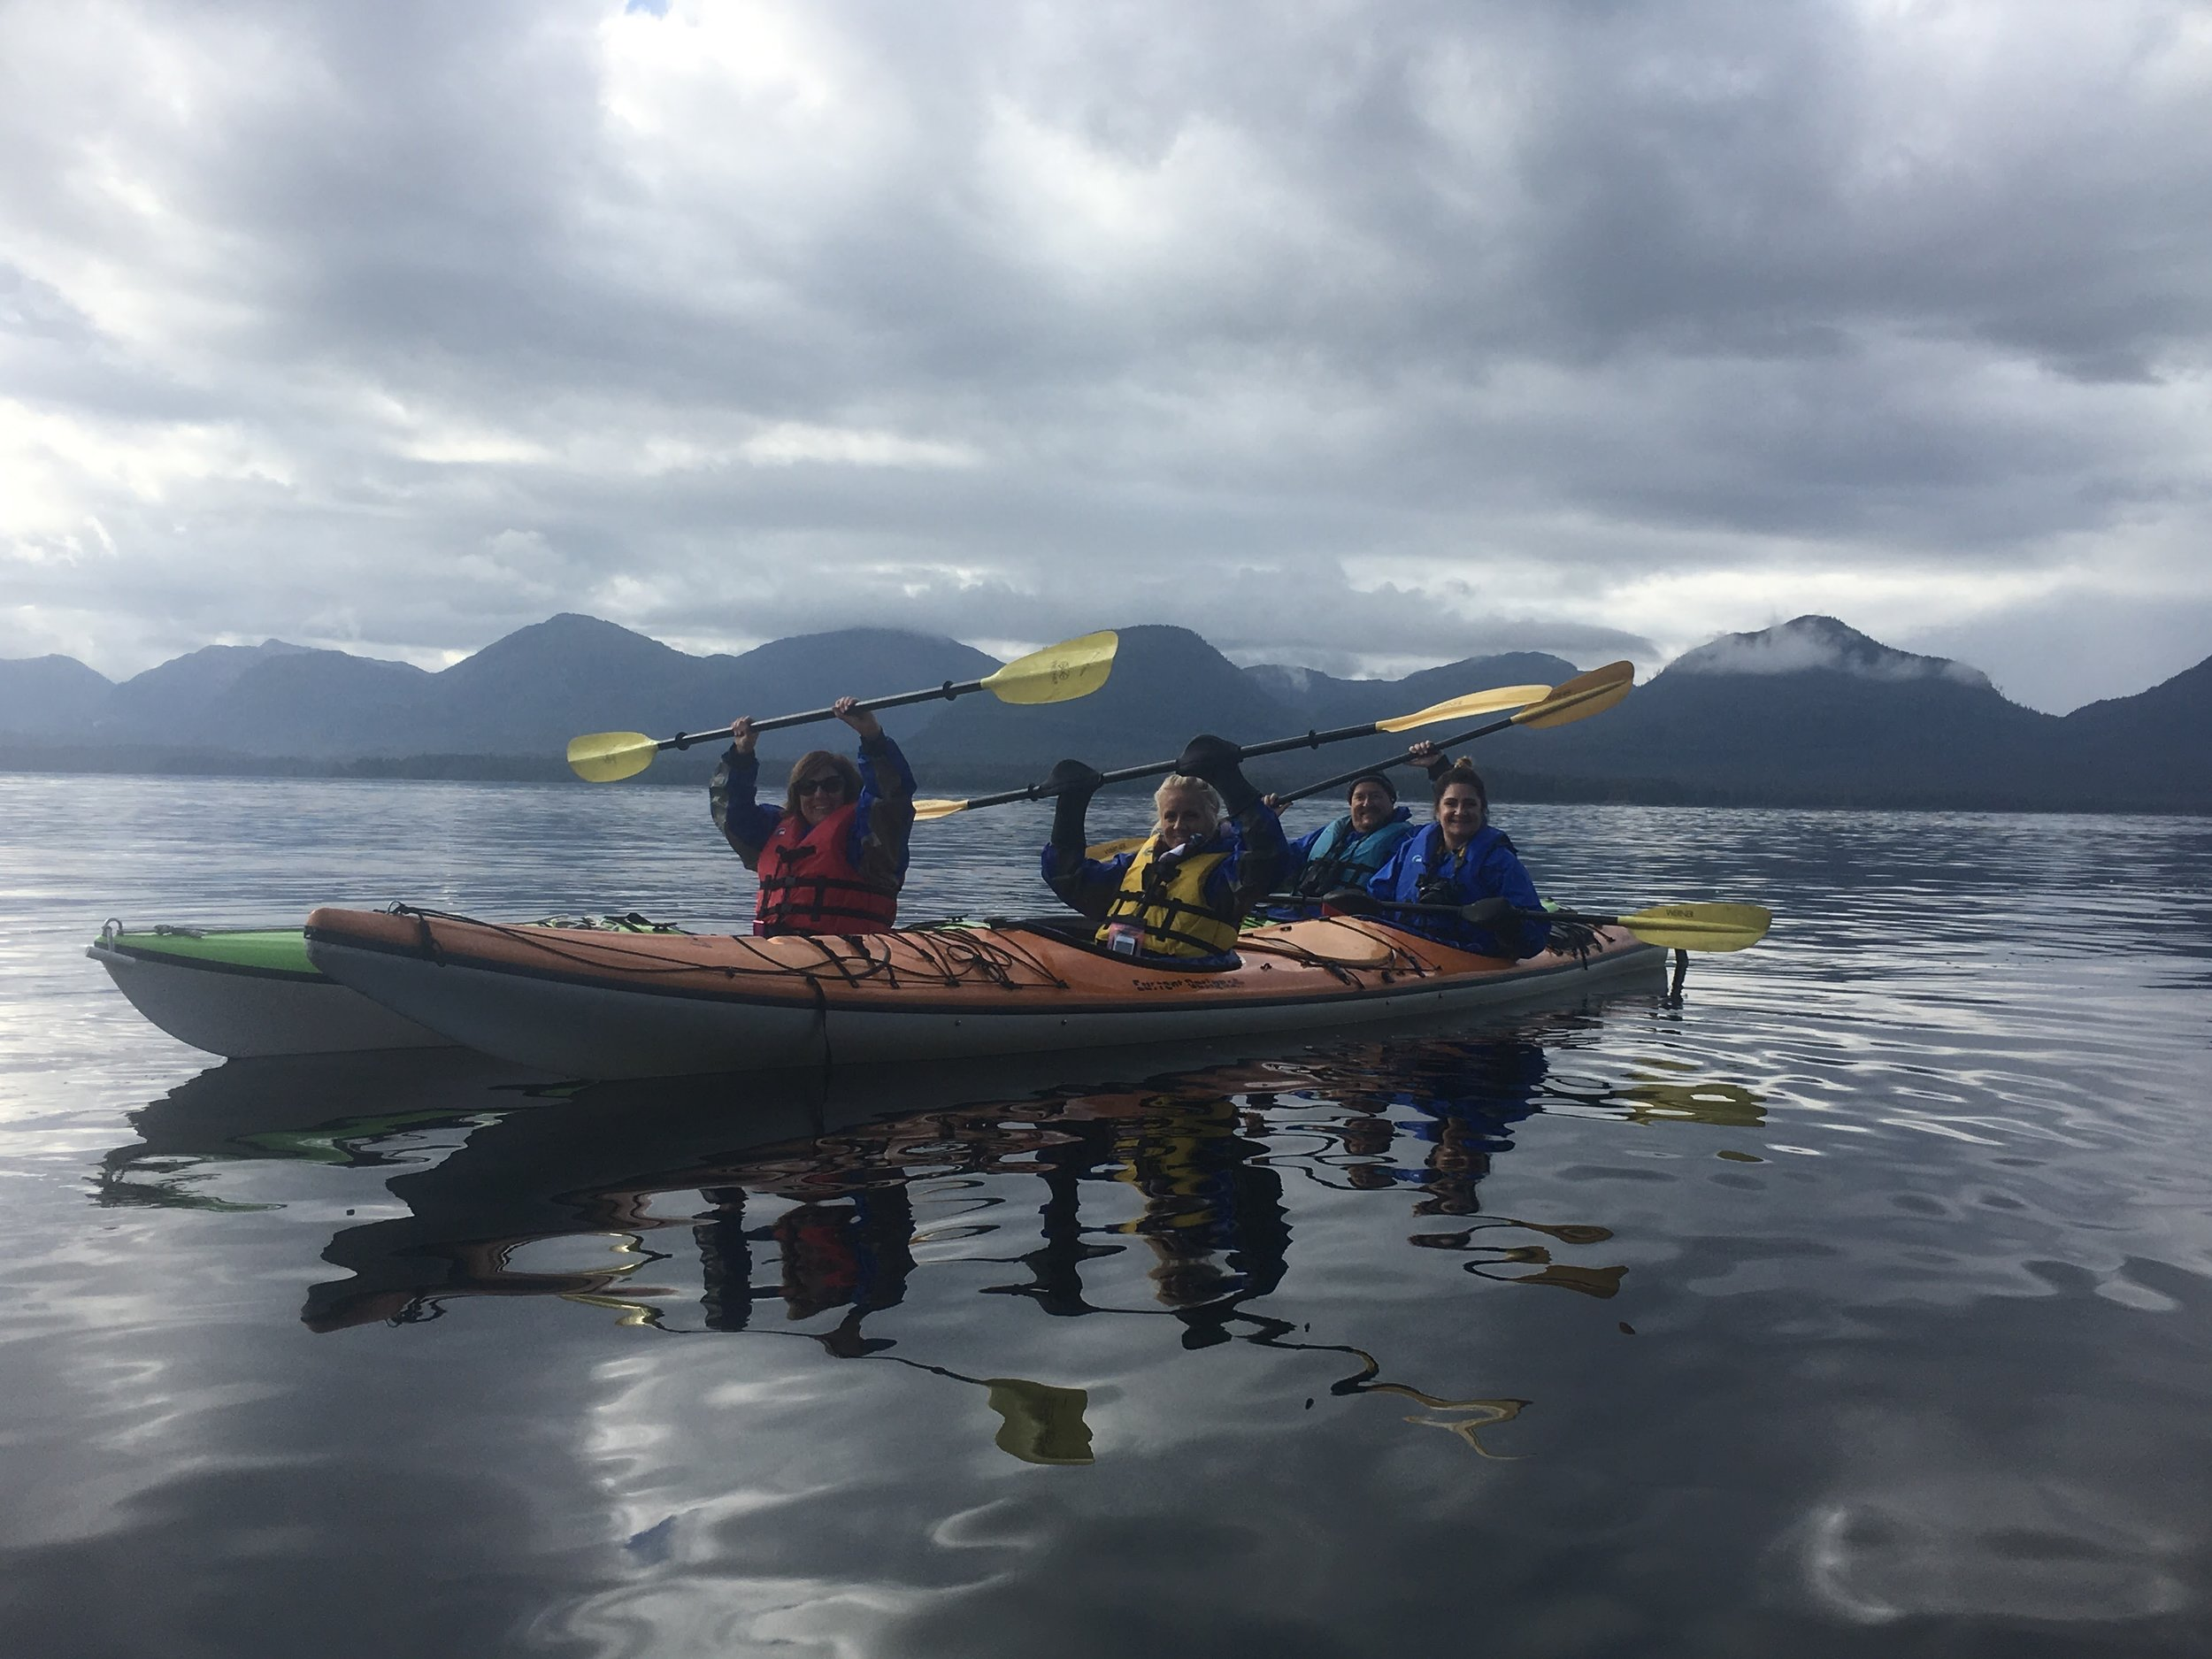 Fun for kayakers of all levels